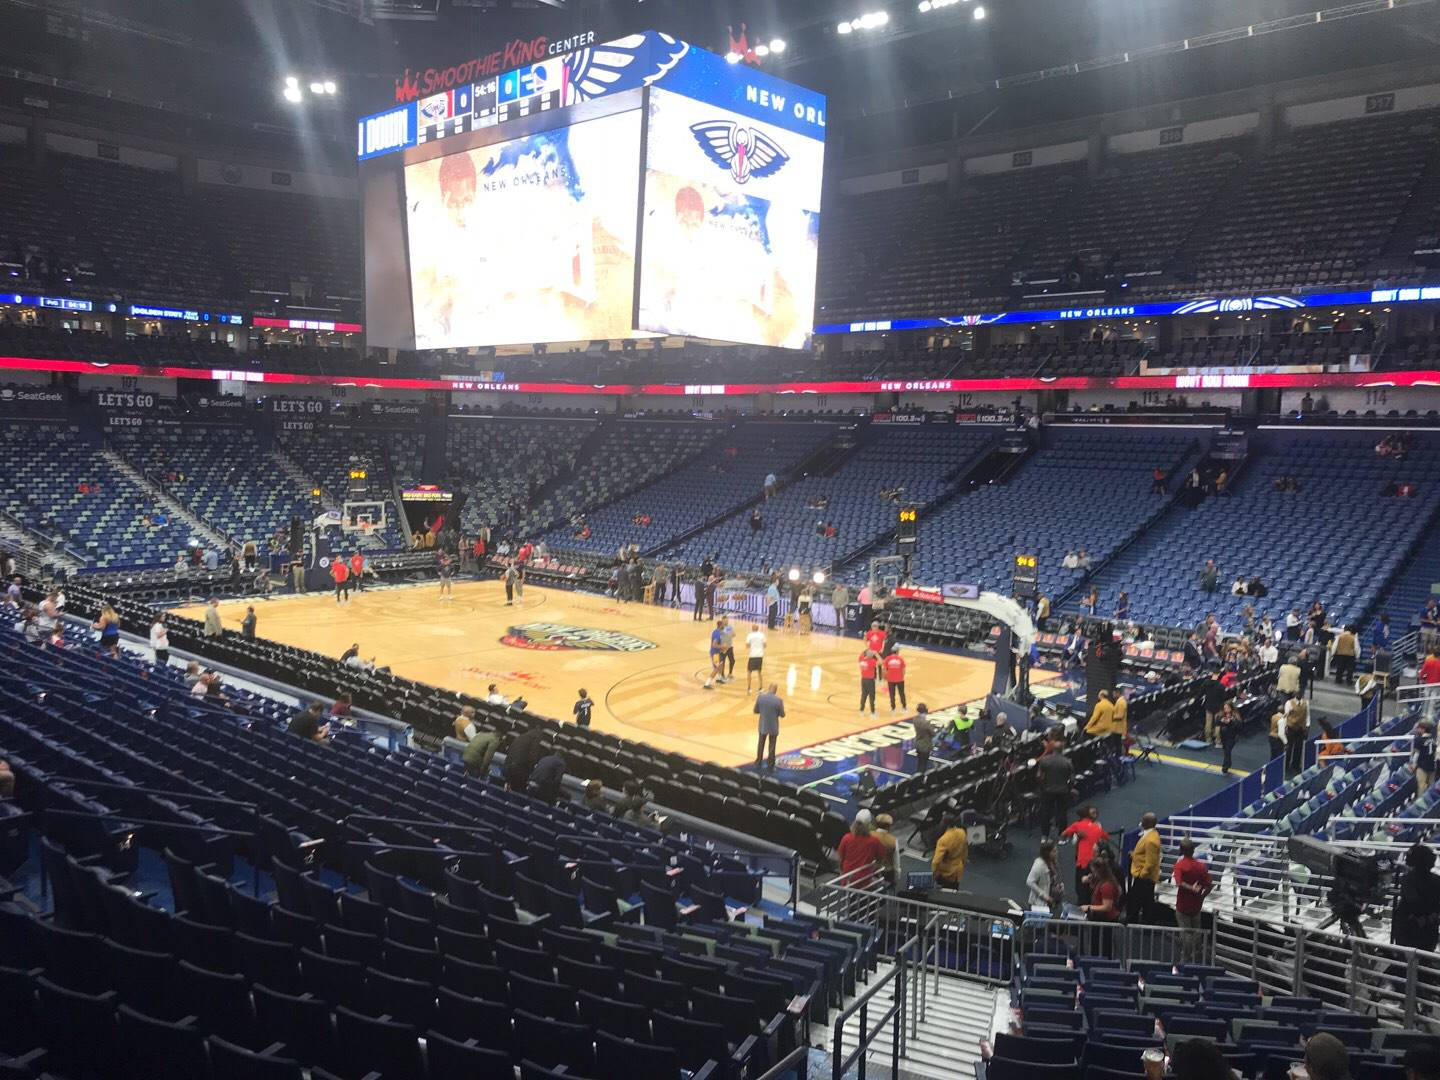 Smoothie King Center Section 121 Row 22 Seat 19